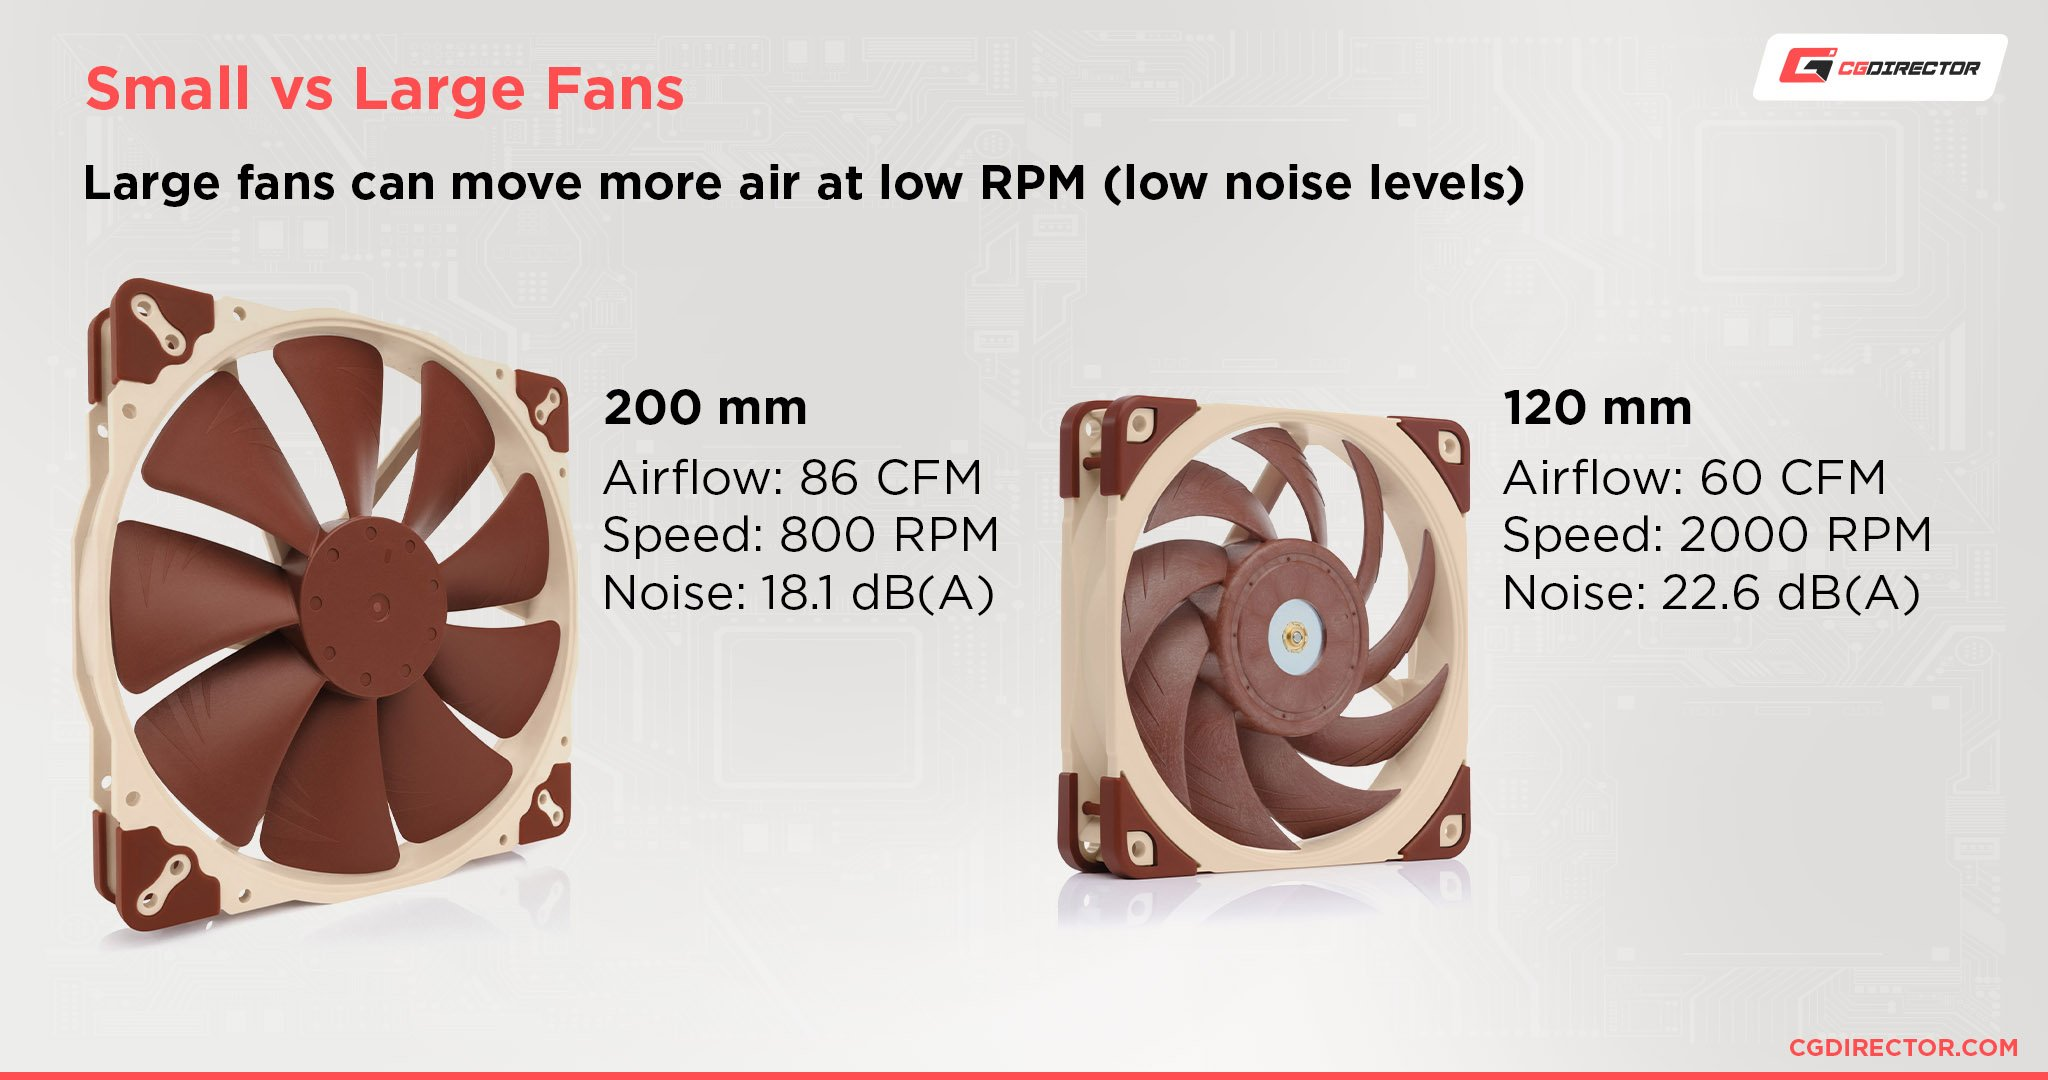 Small vs Large Fans